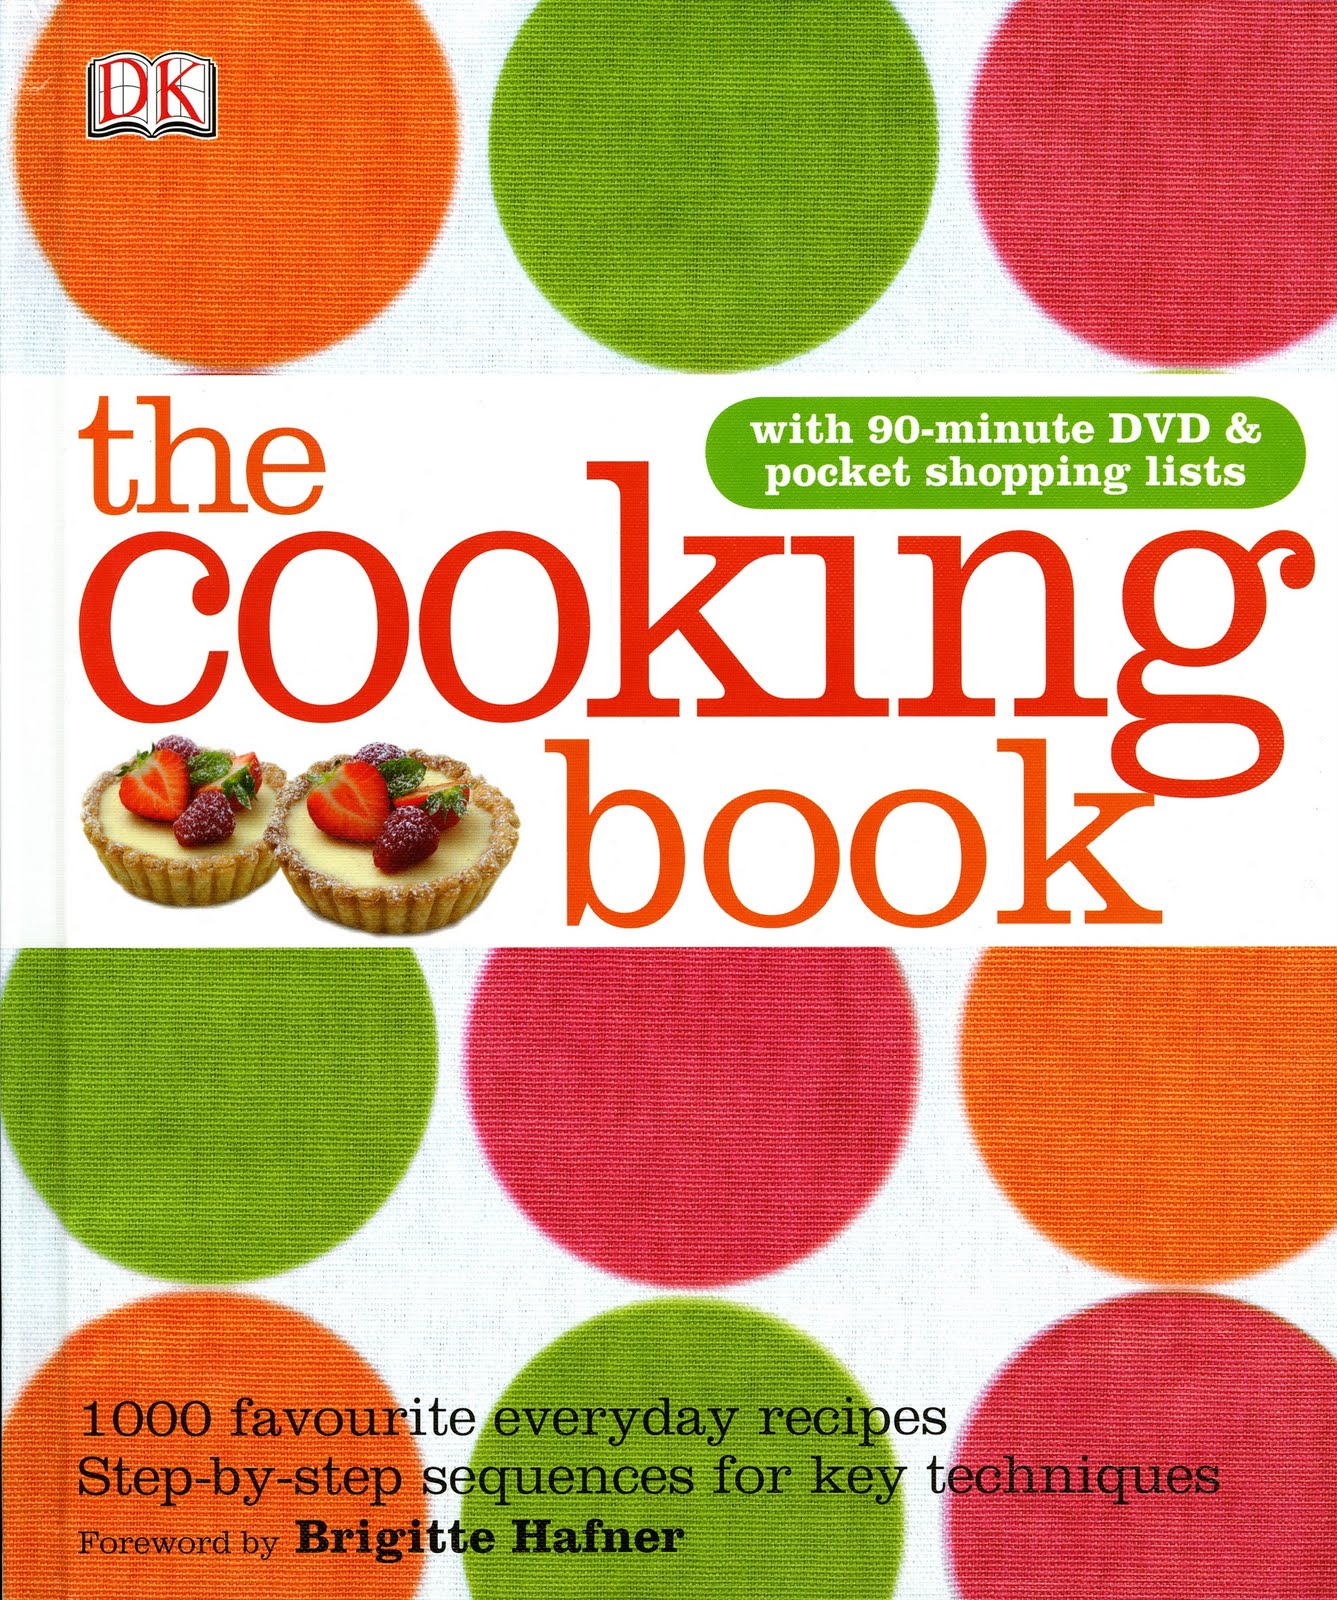 cook book I could cook exclusively from this book for a month and we'd be happy family you should definitely buy this book if you're a huge fan of chrissy teigen.